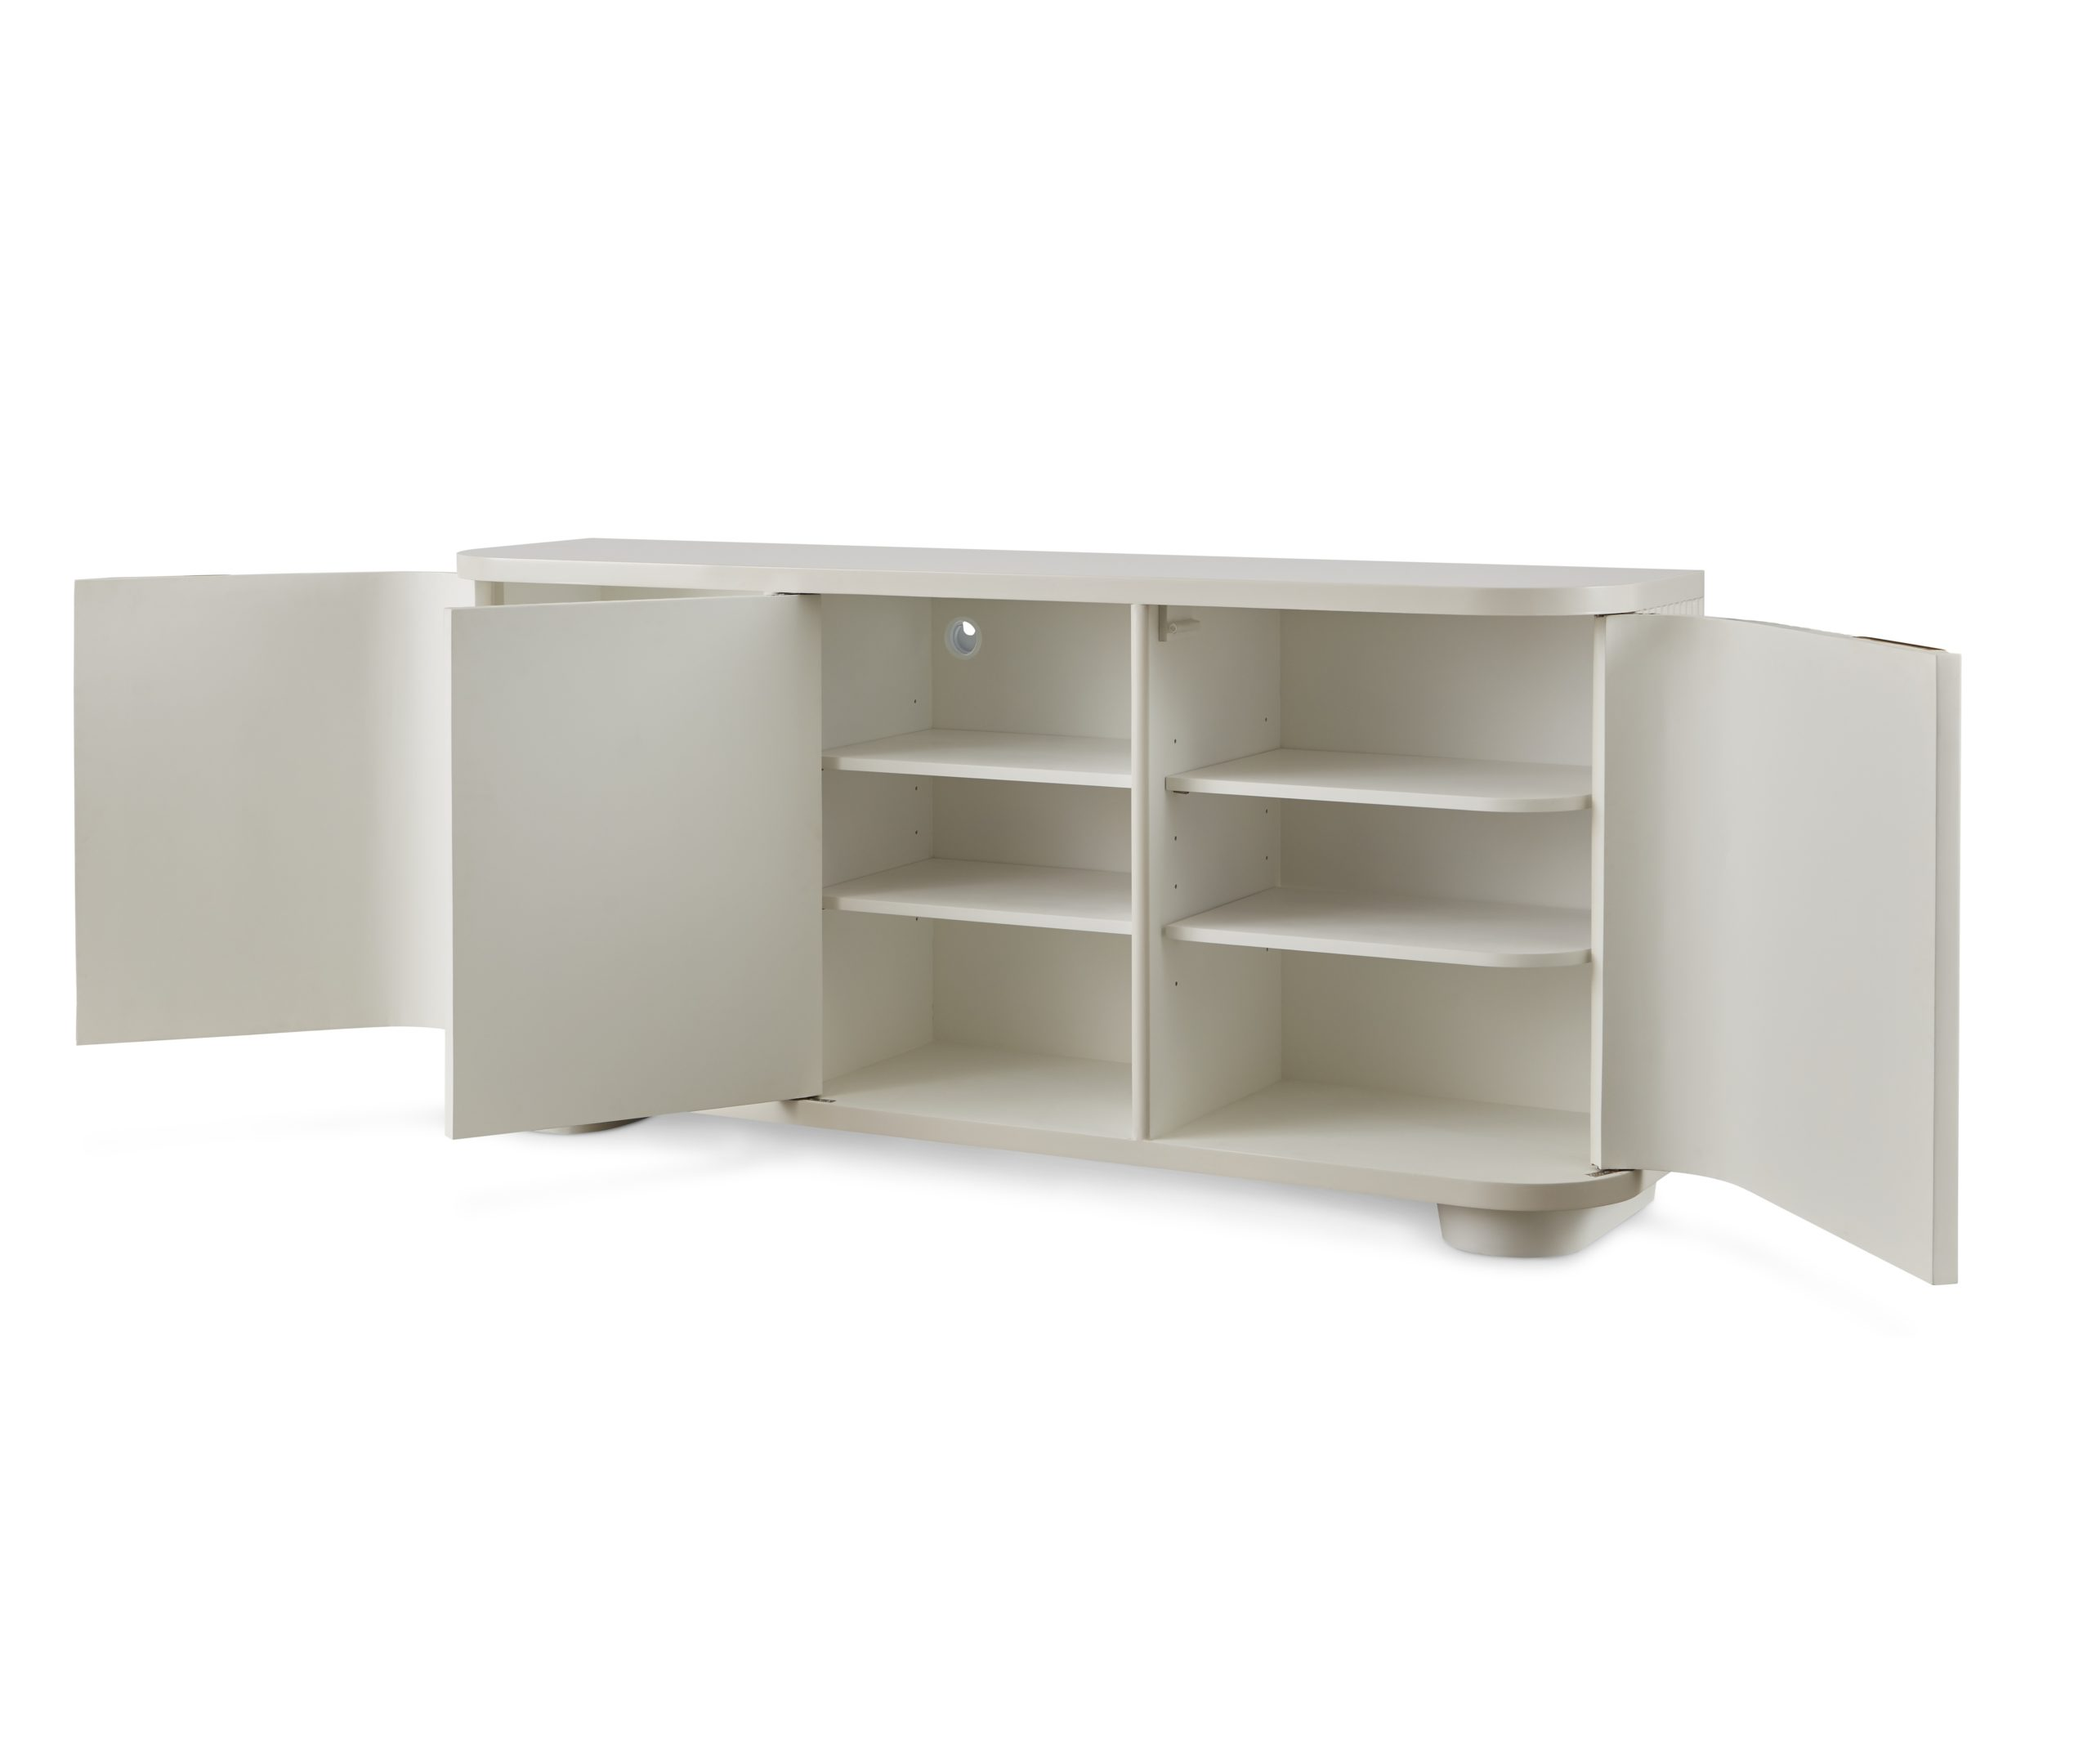 Baker_products_WNWN_harmony_credenza_BAA3275_OPEN-scaled-1